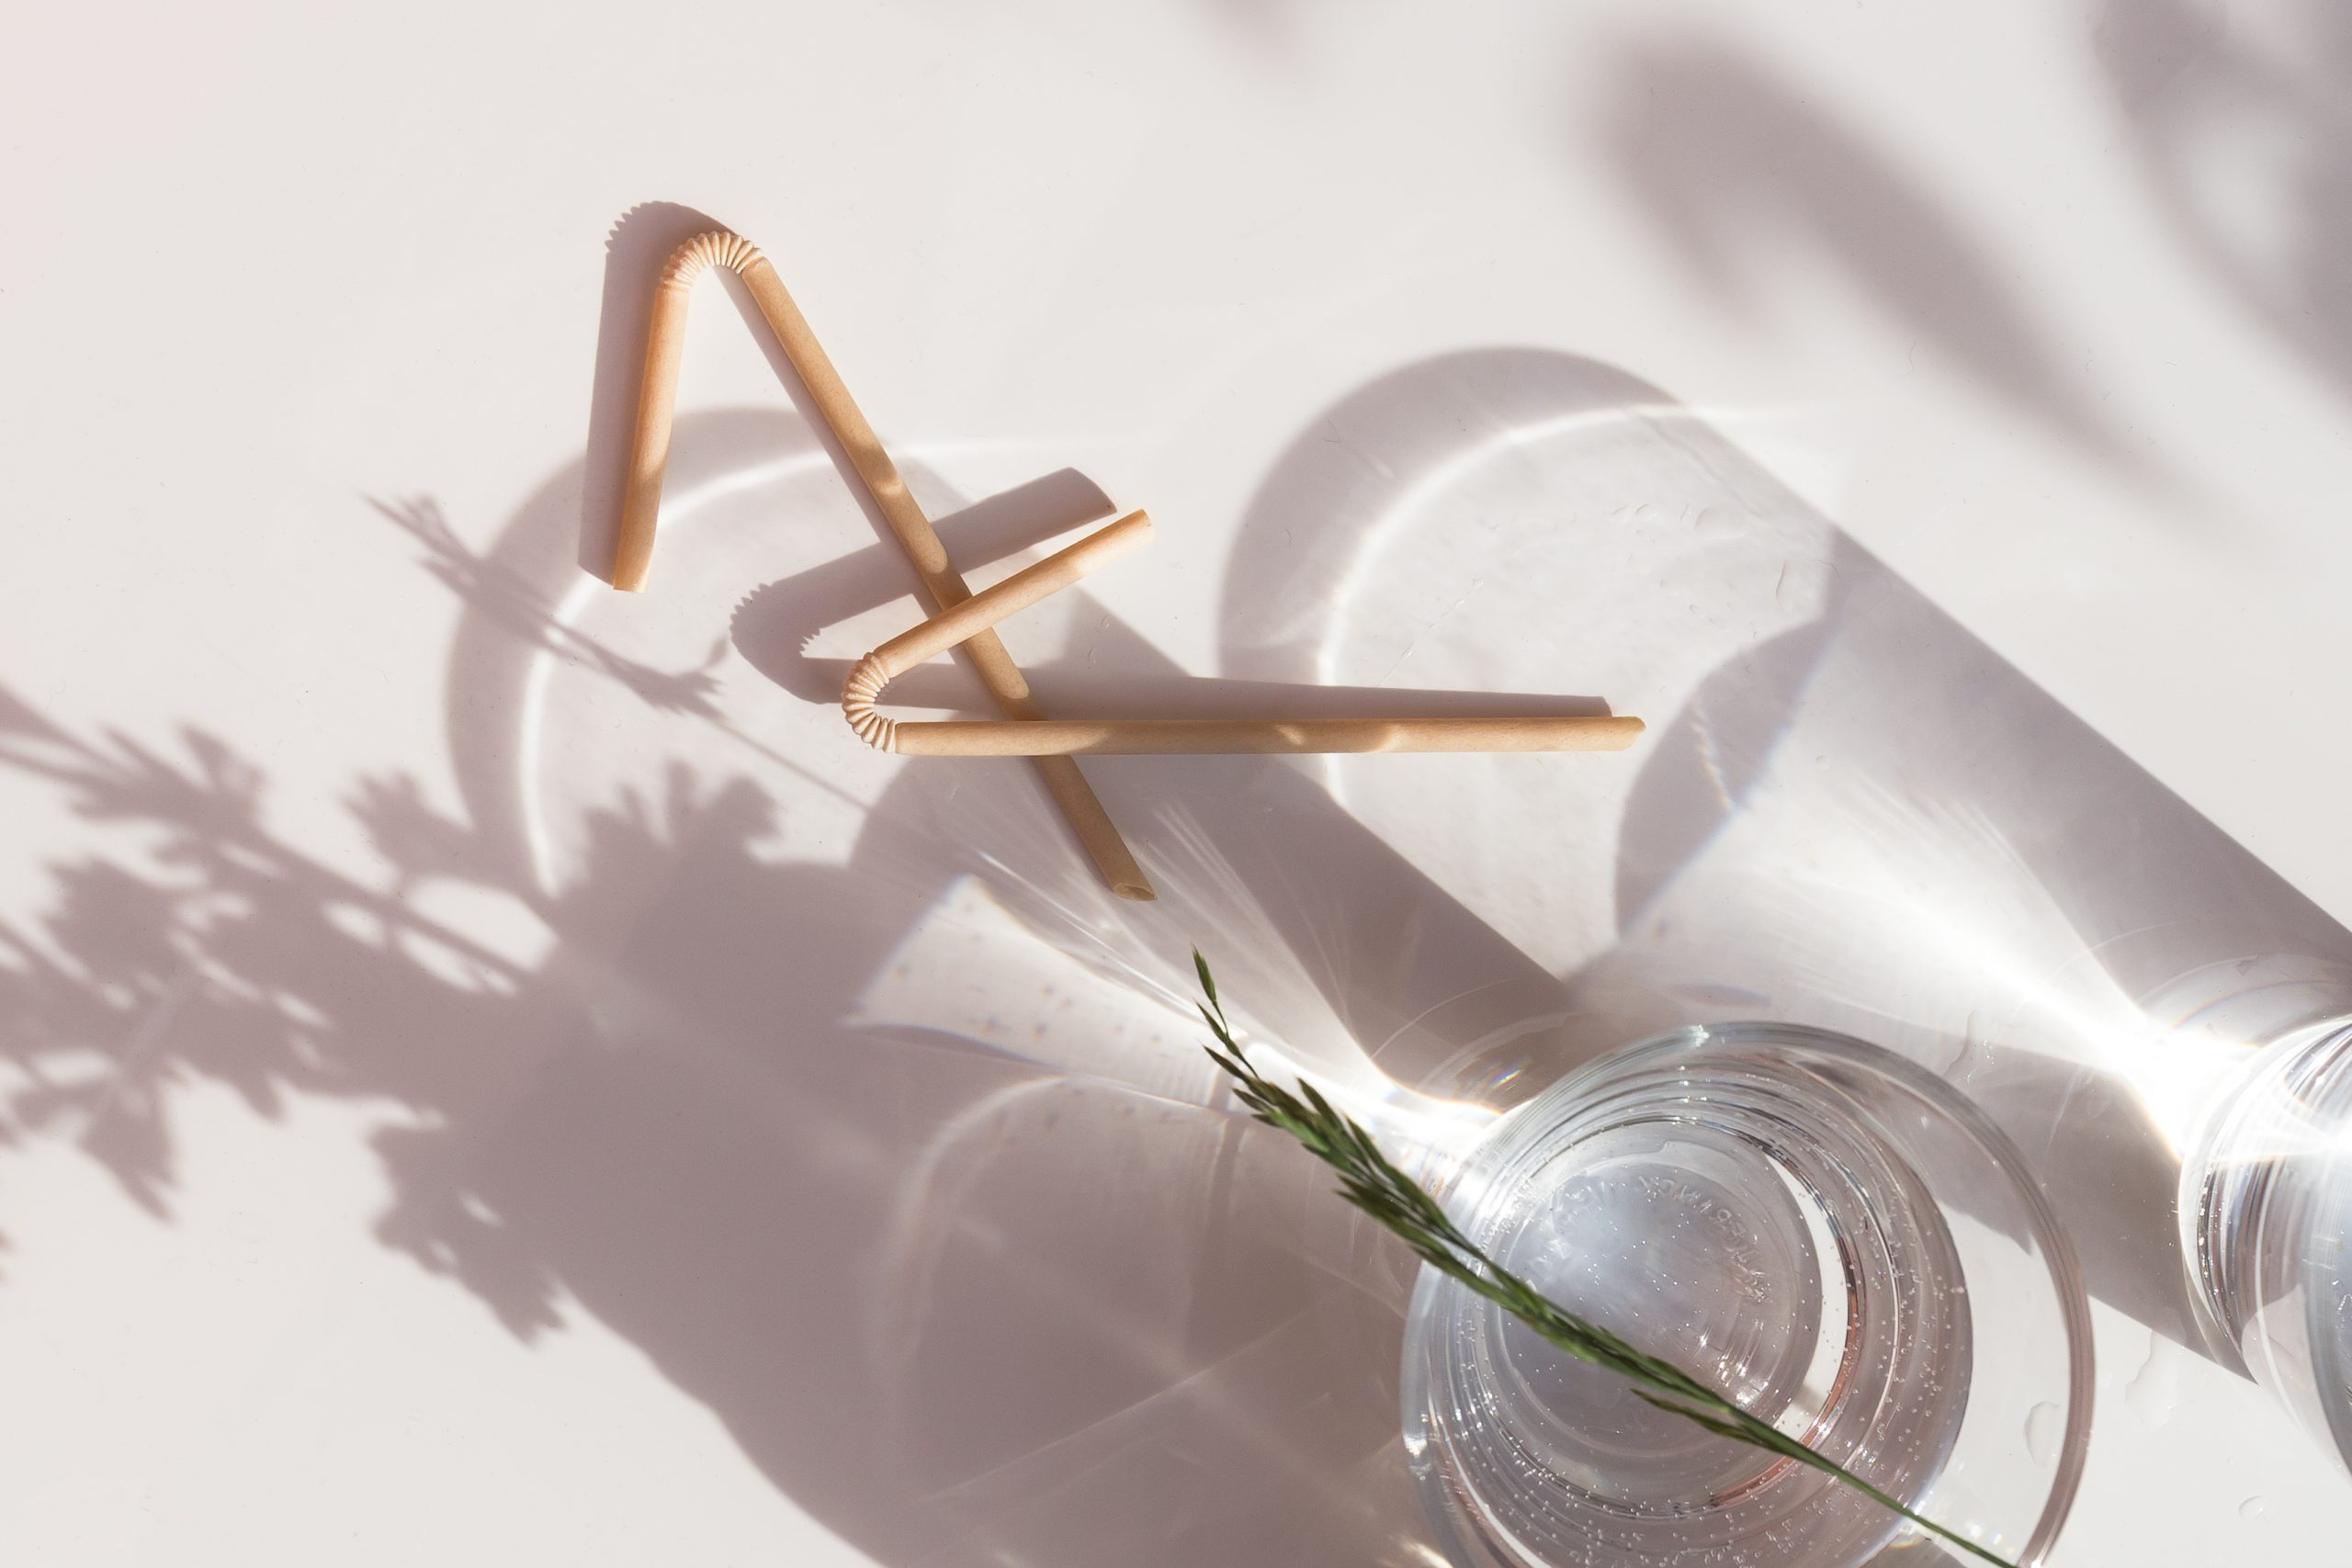 Compostable U-shaped straw made from Sulapac